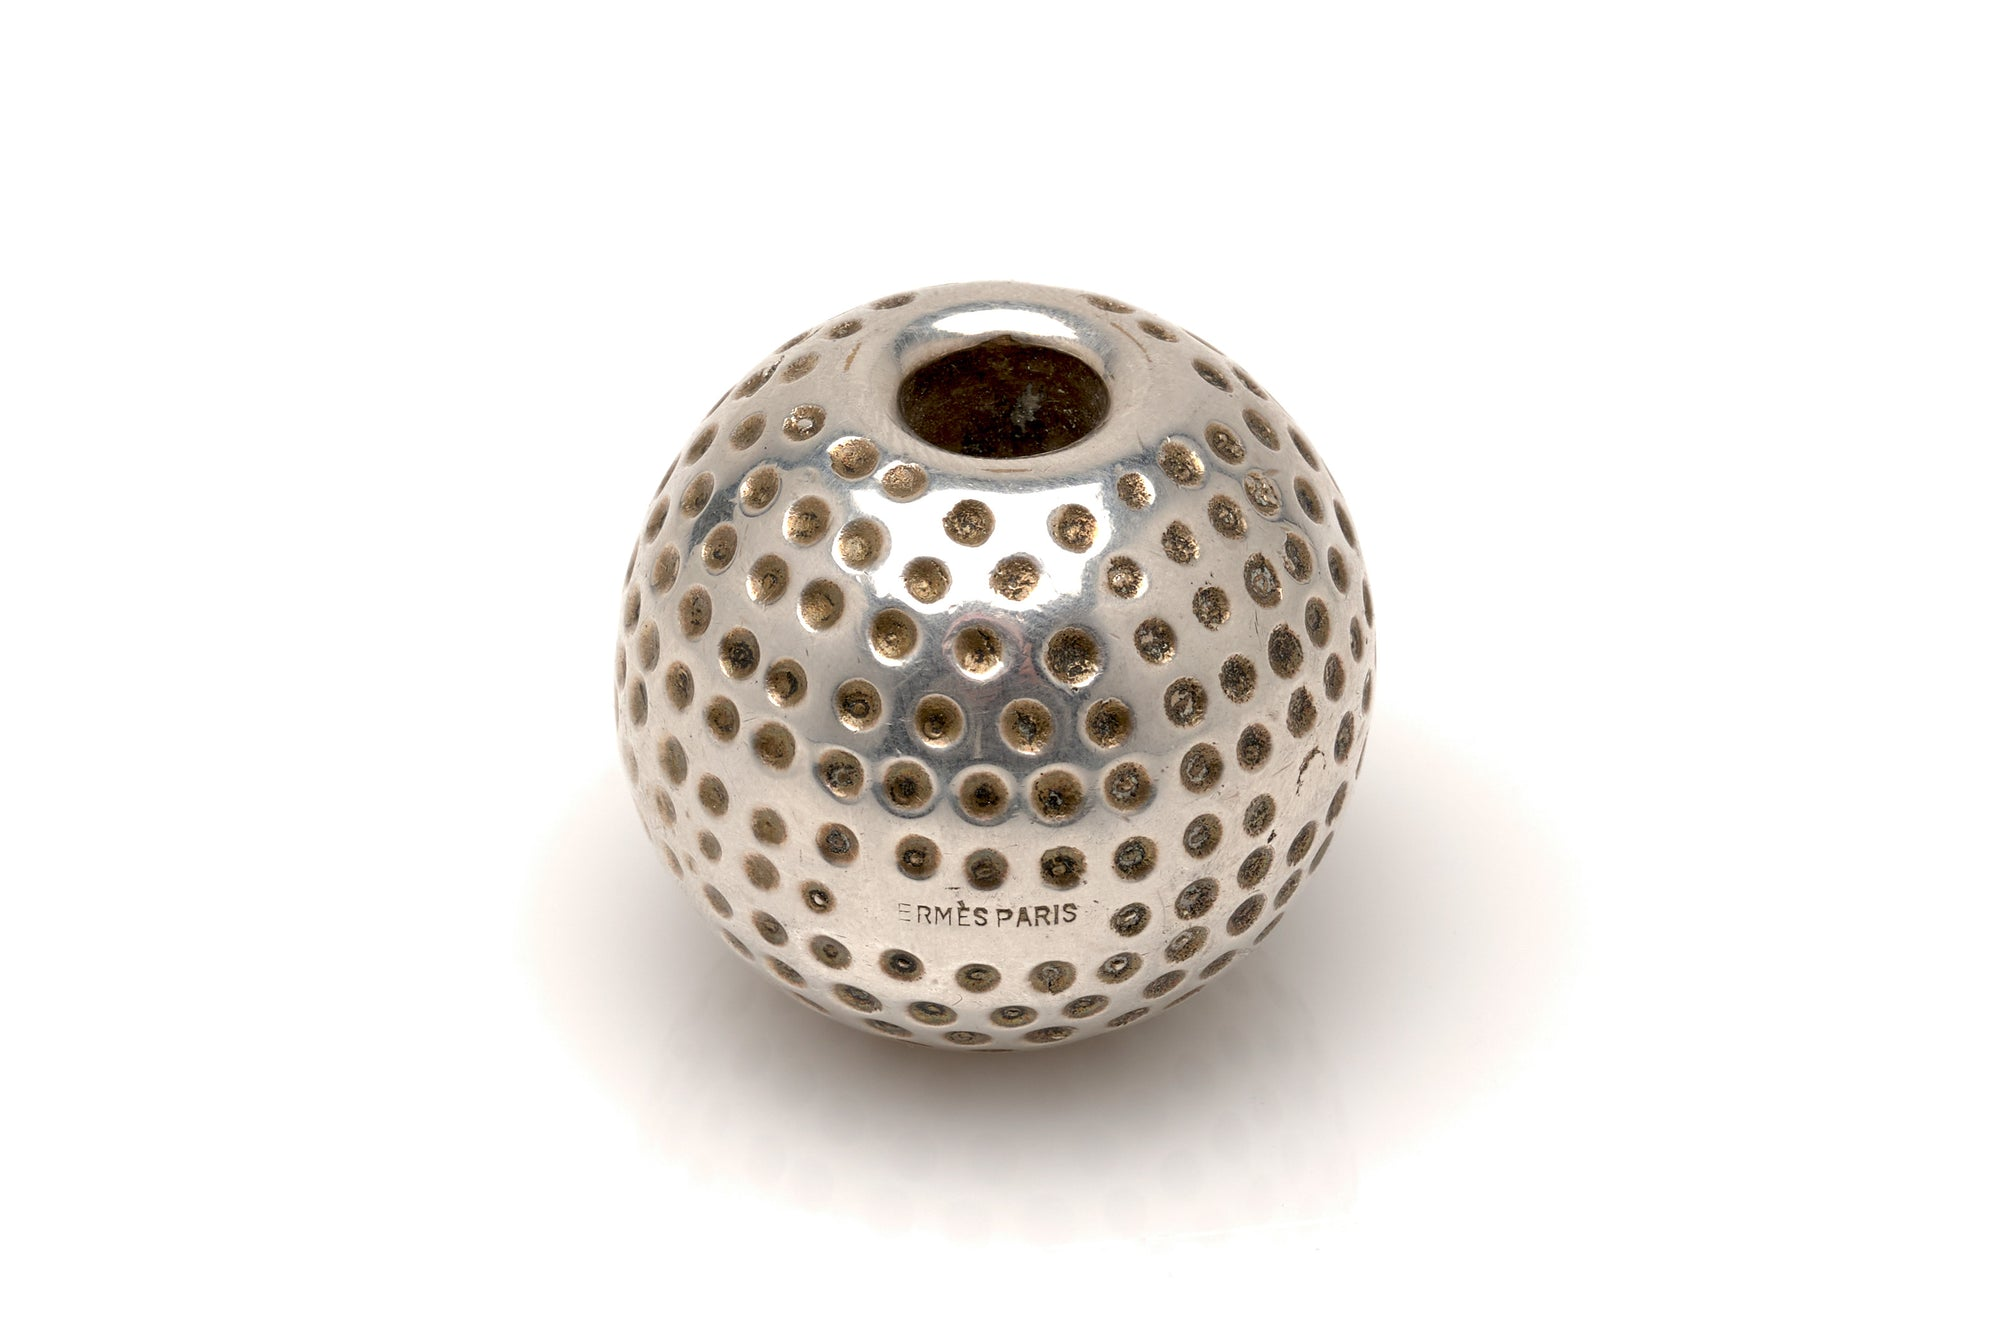 Hermes Golf Ball Pen Holder